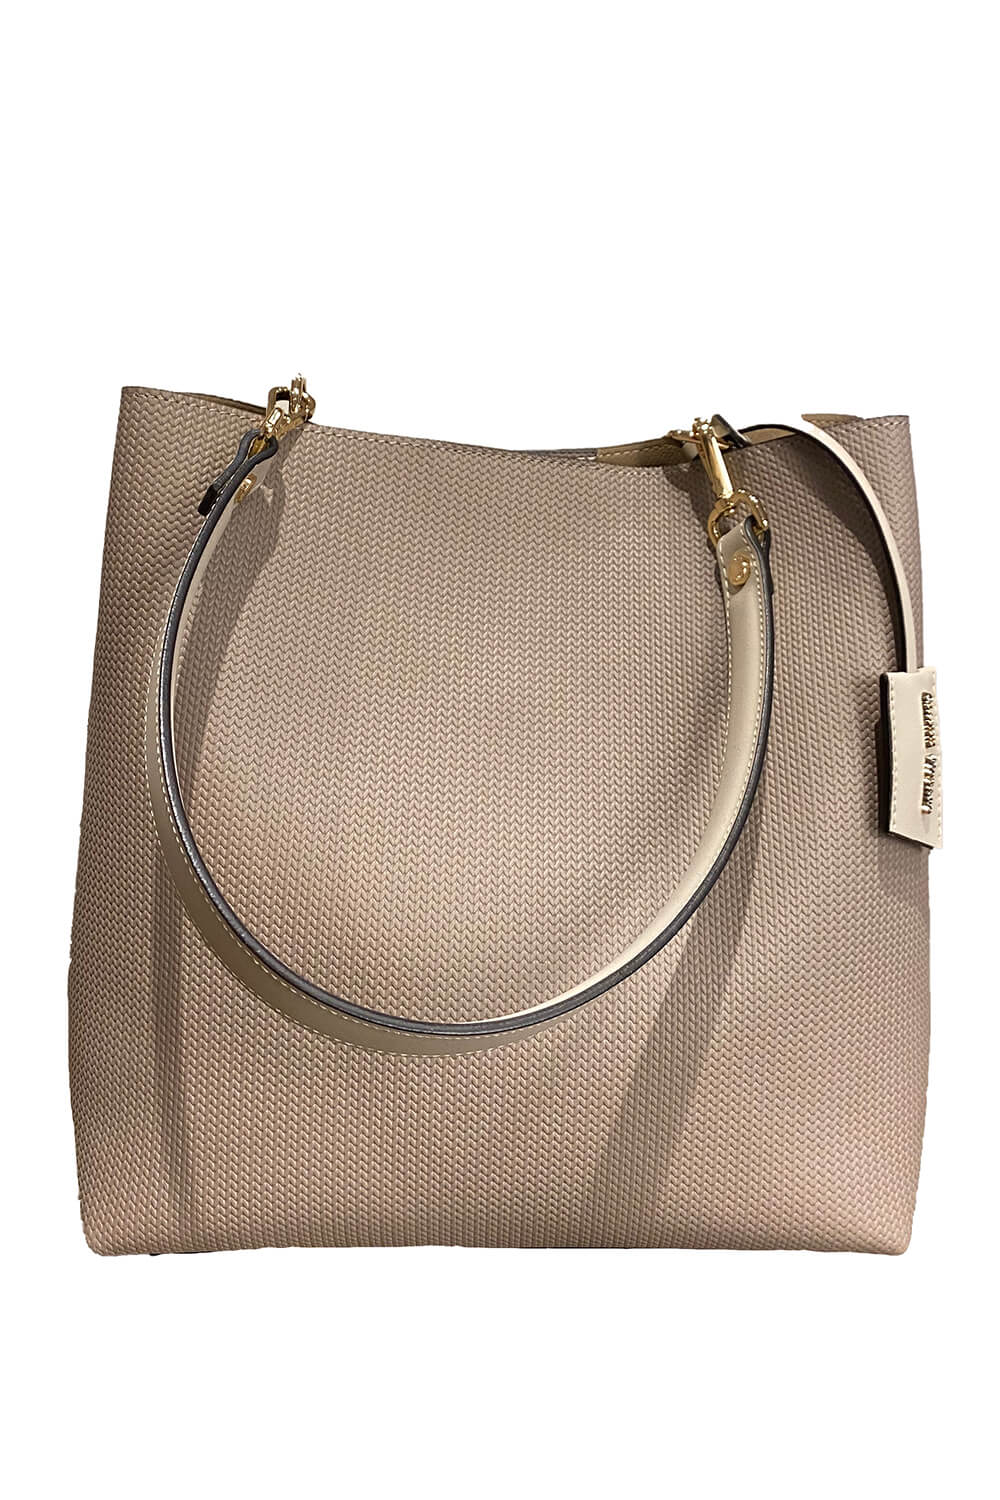 GIANNI NOTARO | shoulder bag in Taupe with a braided structure and suede leather details